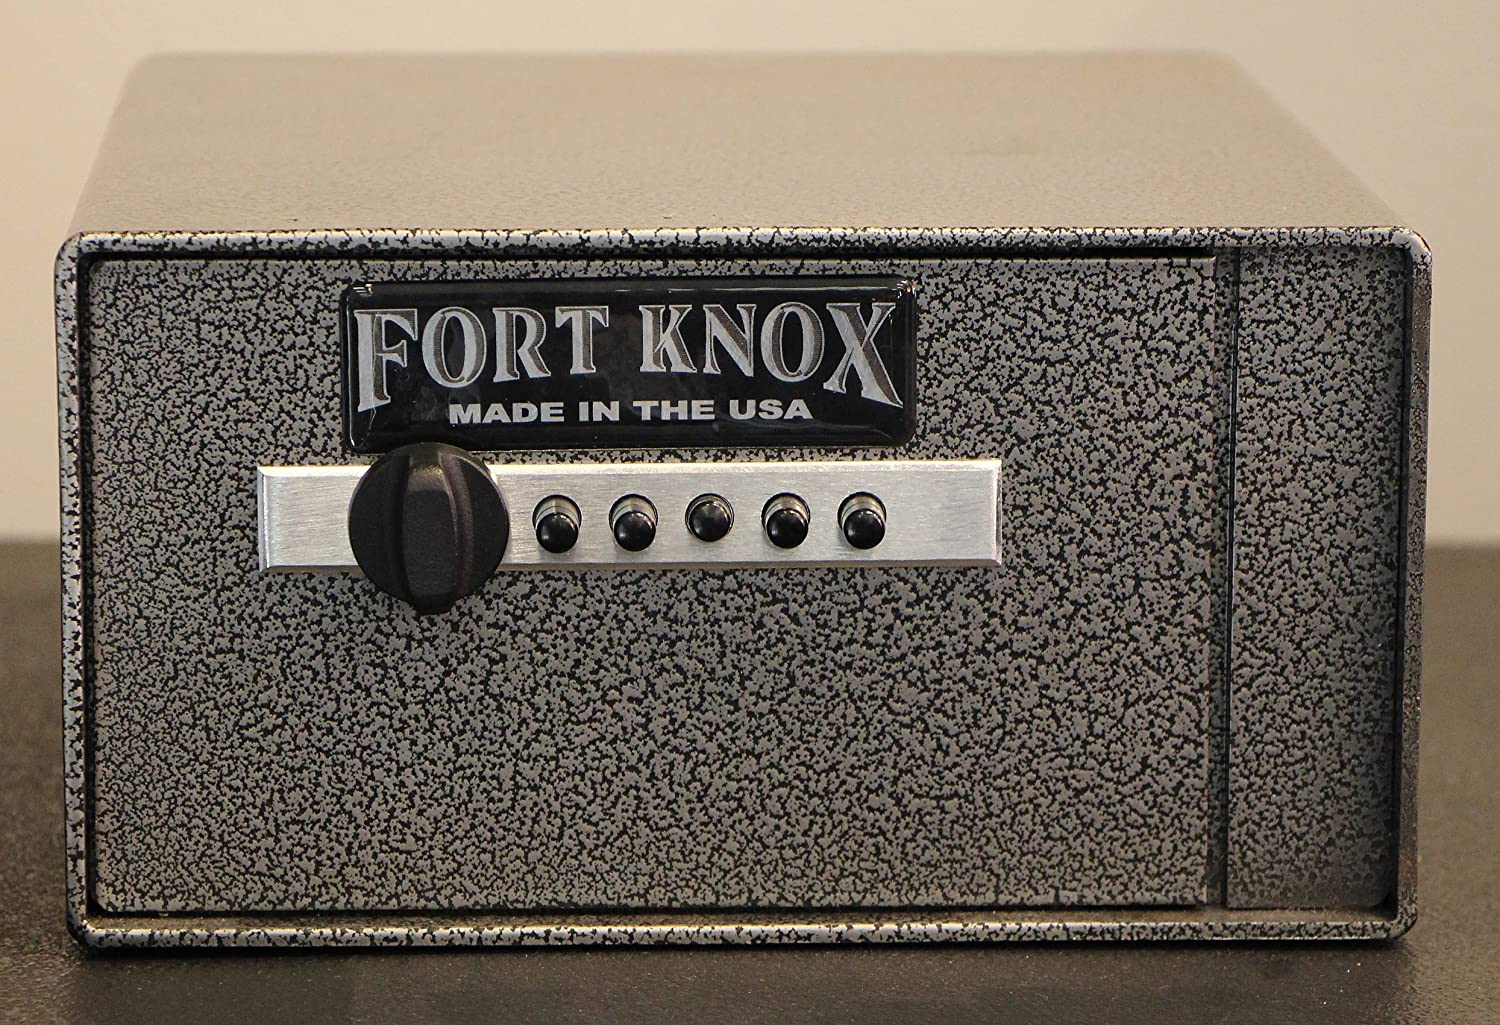 3. Fort Knox Personal Pistol Safe